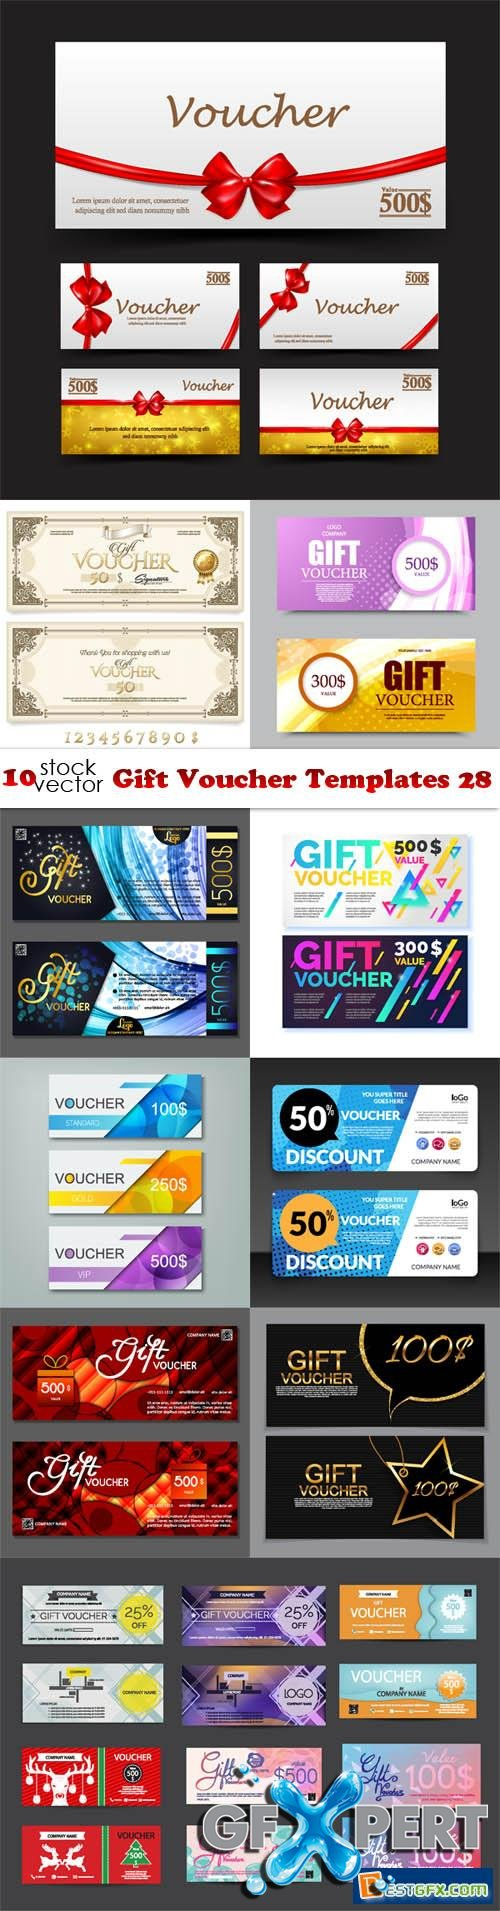 Vectors - Gift Voucher Templates 28